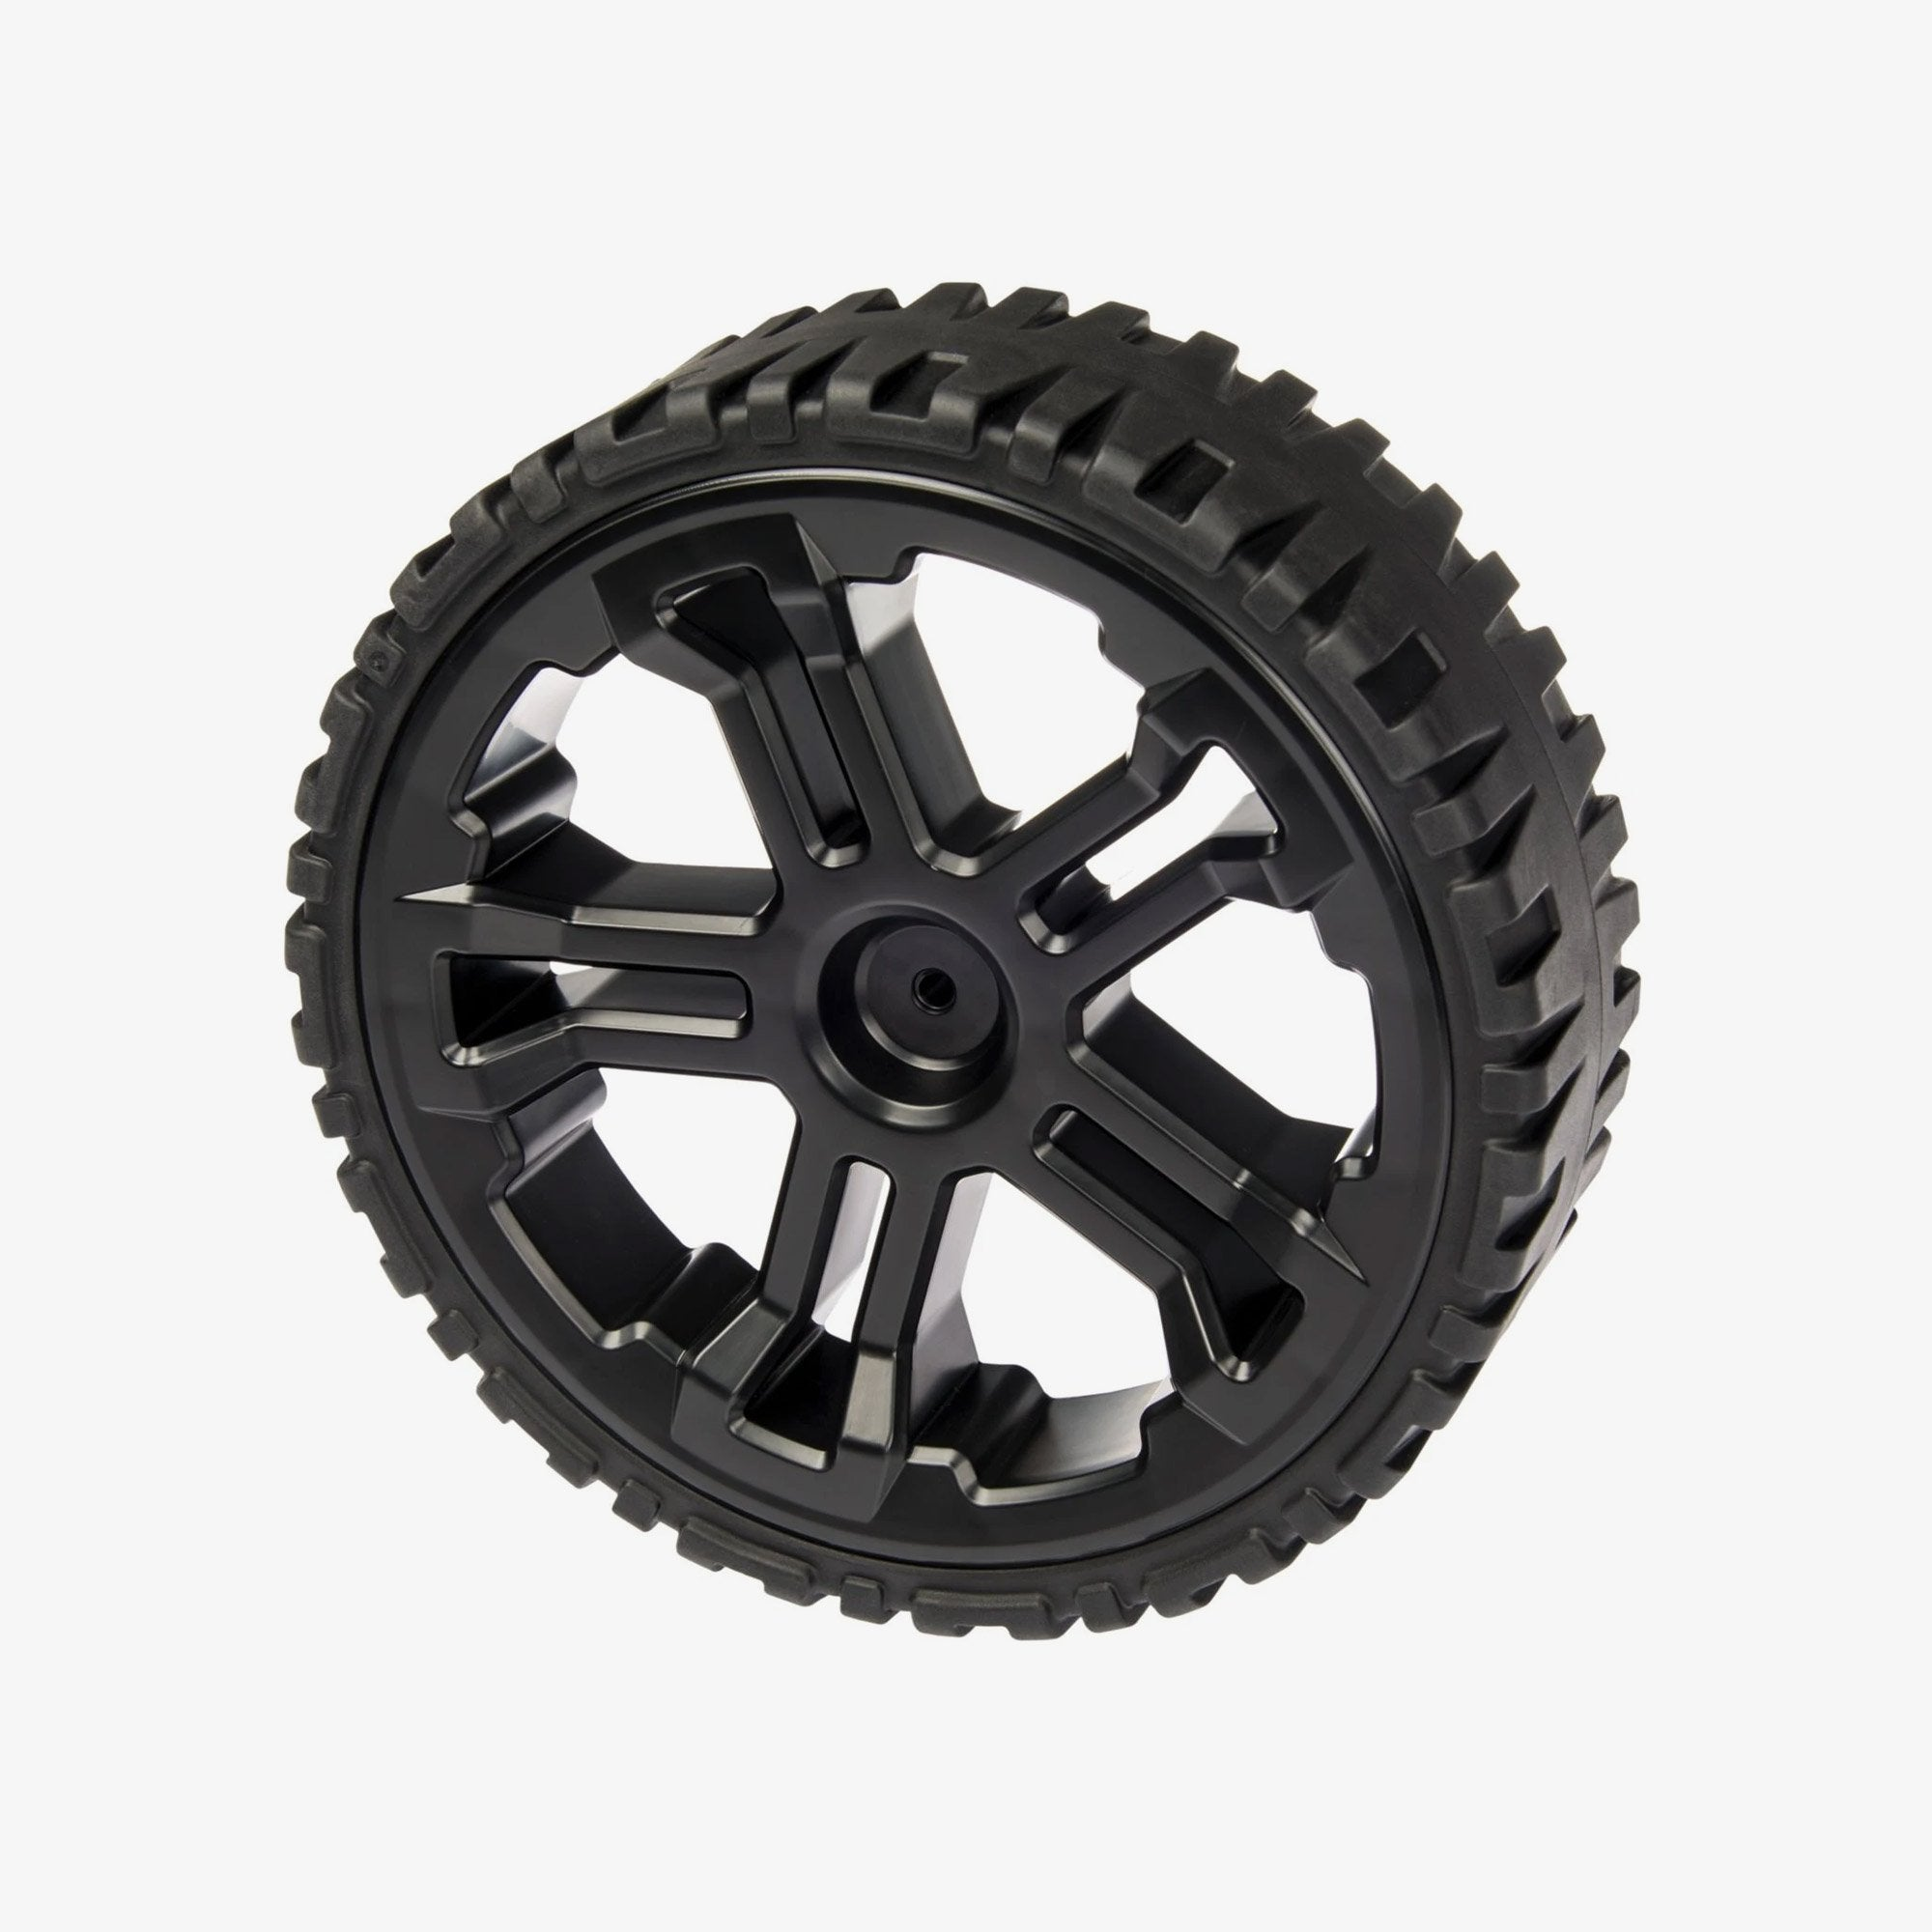 Large View | 10-Inch Rubber Wheels For Trailmate Coolers in Black at Igloo Replacement Parts